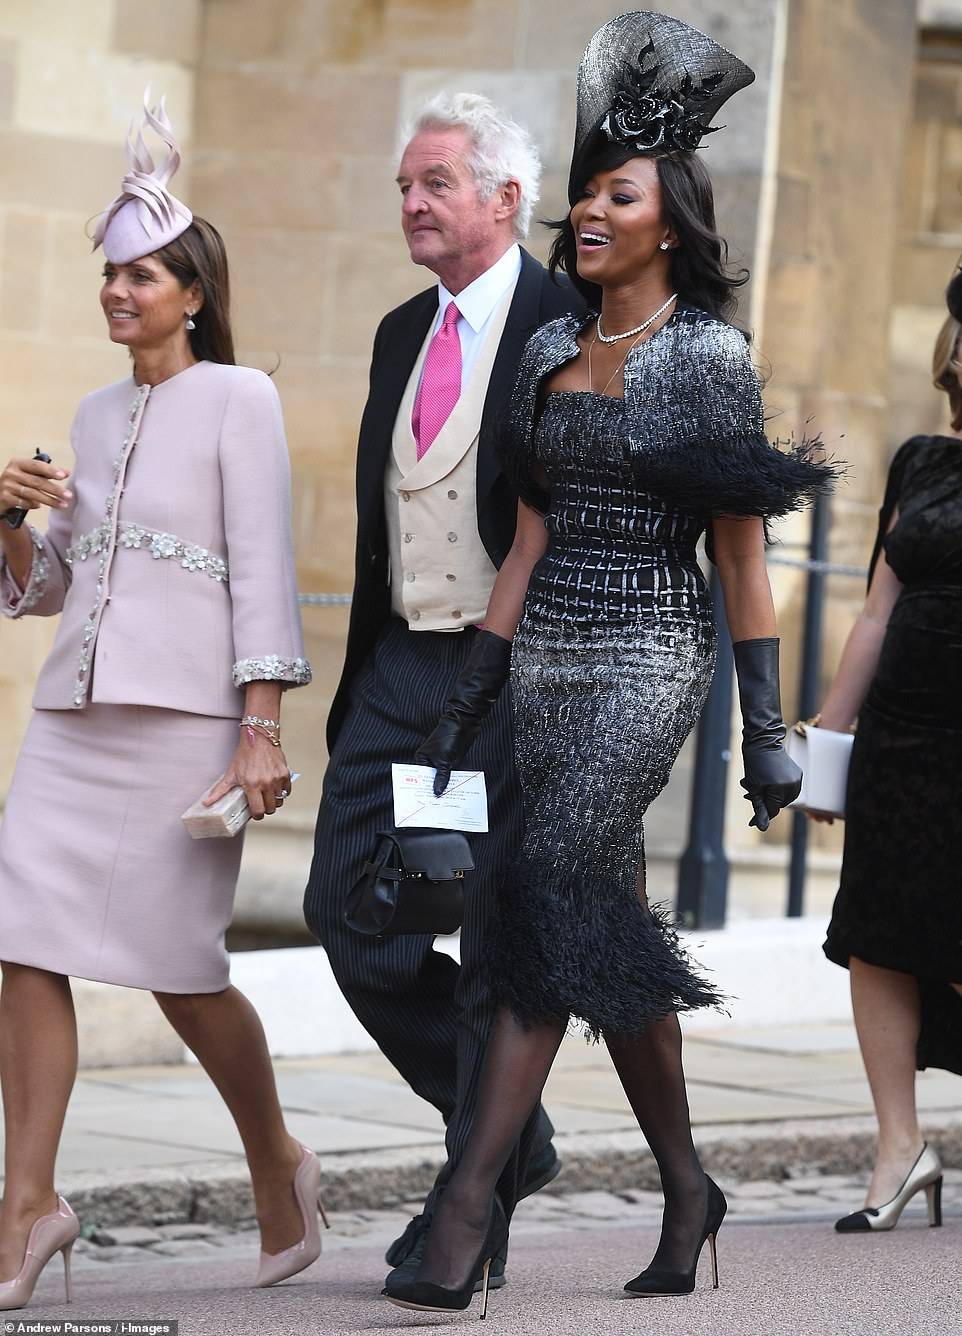 4981504-6268613-Supermodel_Naomi_Campbell_makes_her_way_into_the_wedding_of_Euge-m-32_1539335004886